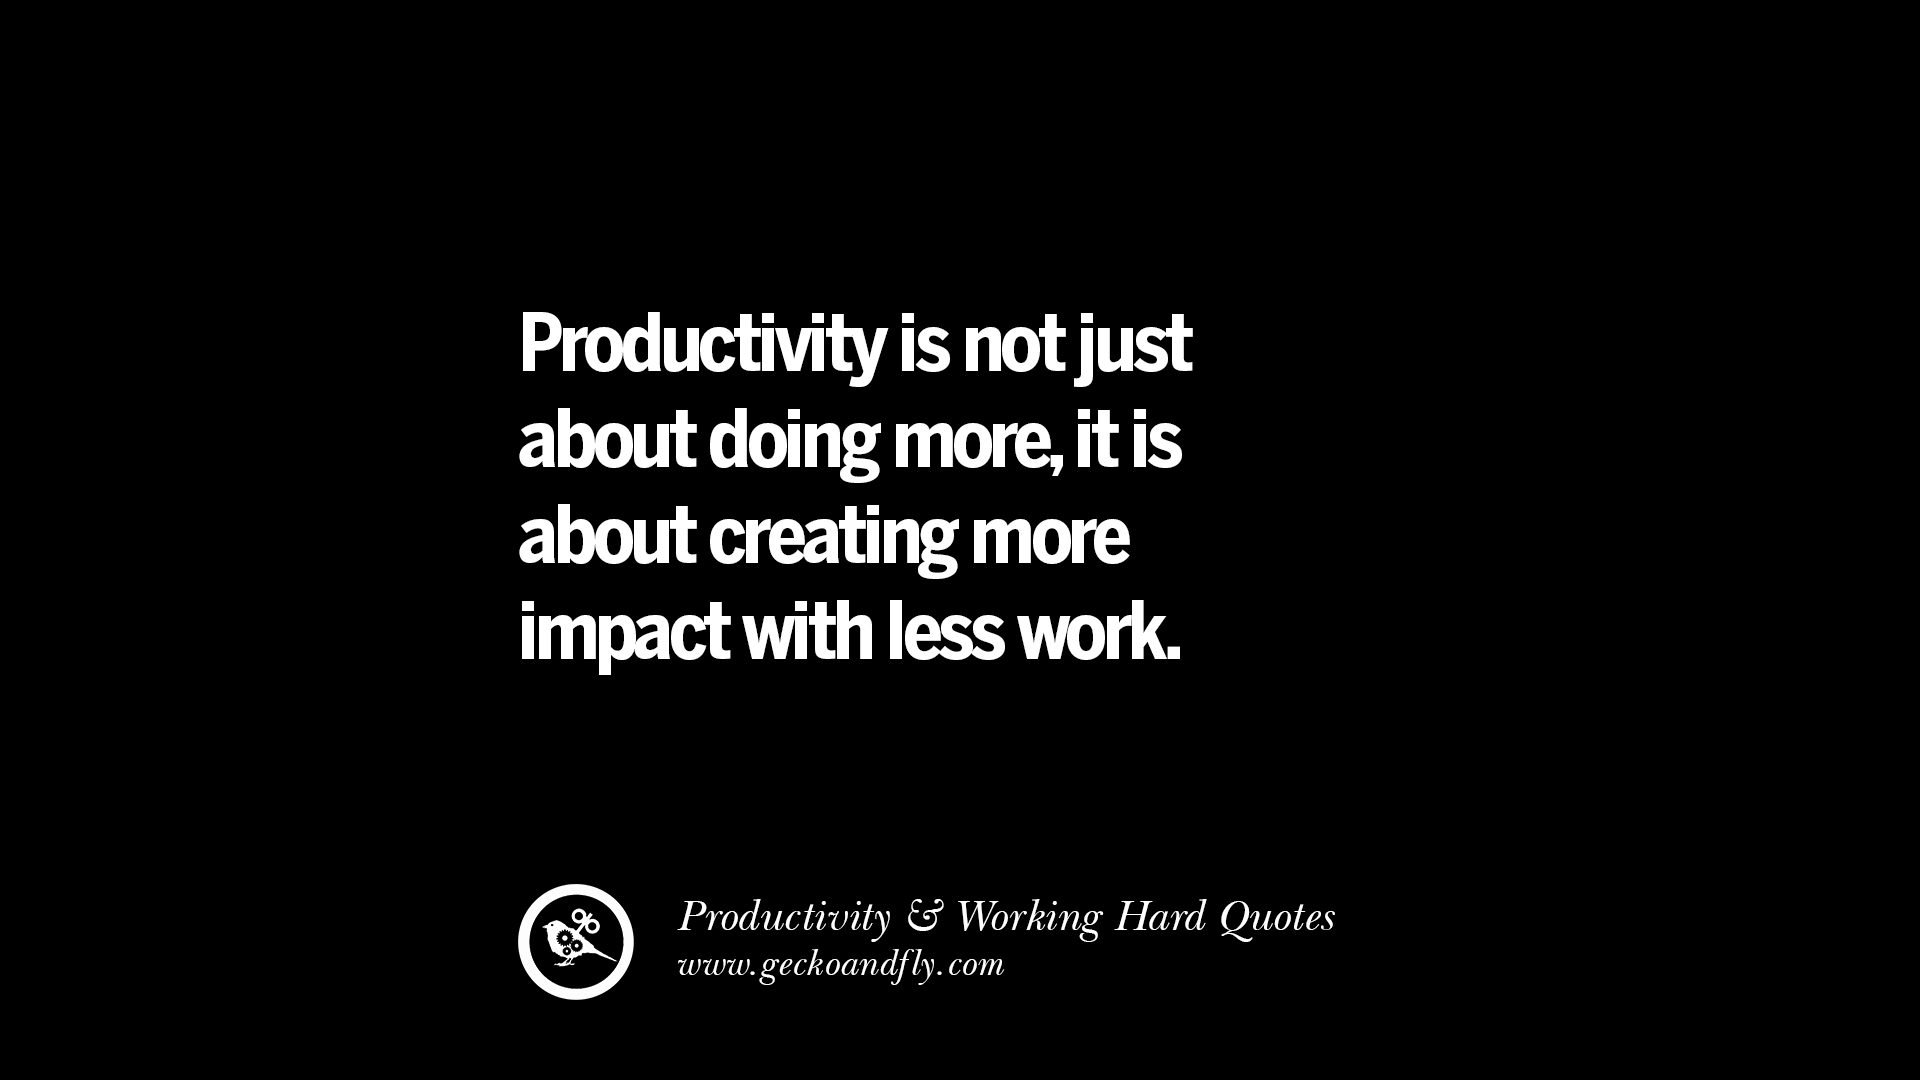 30 Uplifting Quotes On Increasing Productivity And Working. Heartbreak Quotes Tagalog For Her. Quotes You Hate Someone. Deep Weed Quotes. Christmas Quotes About Giving And Sharing. Deep Quotes Meme Maker. Trust Gaining Quotes. Nature Quotes God. Happy Quotes Dp